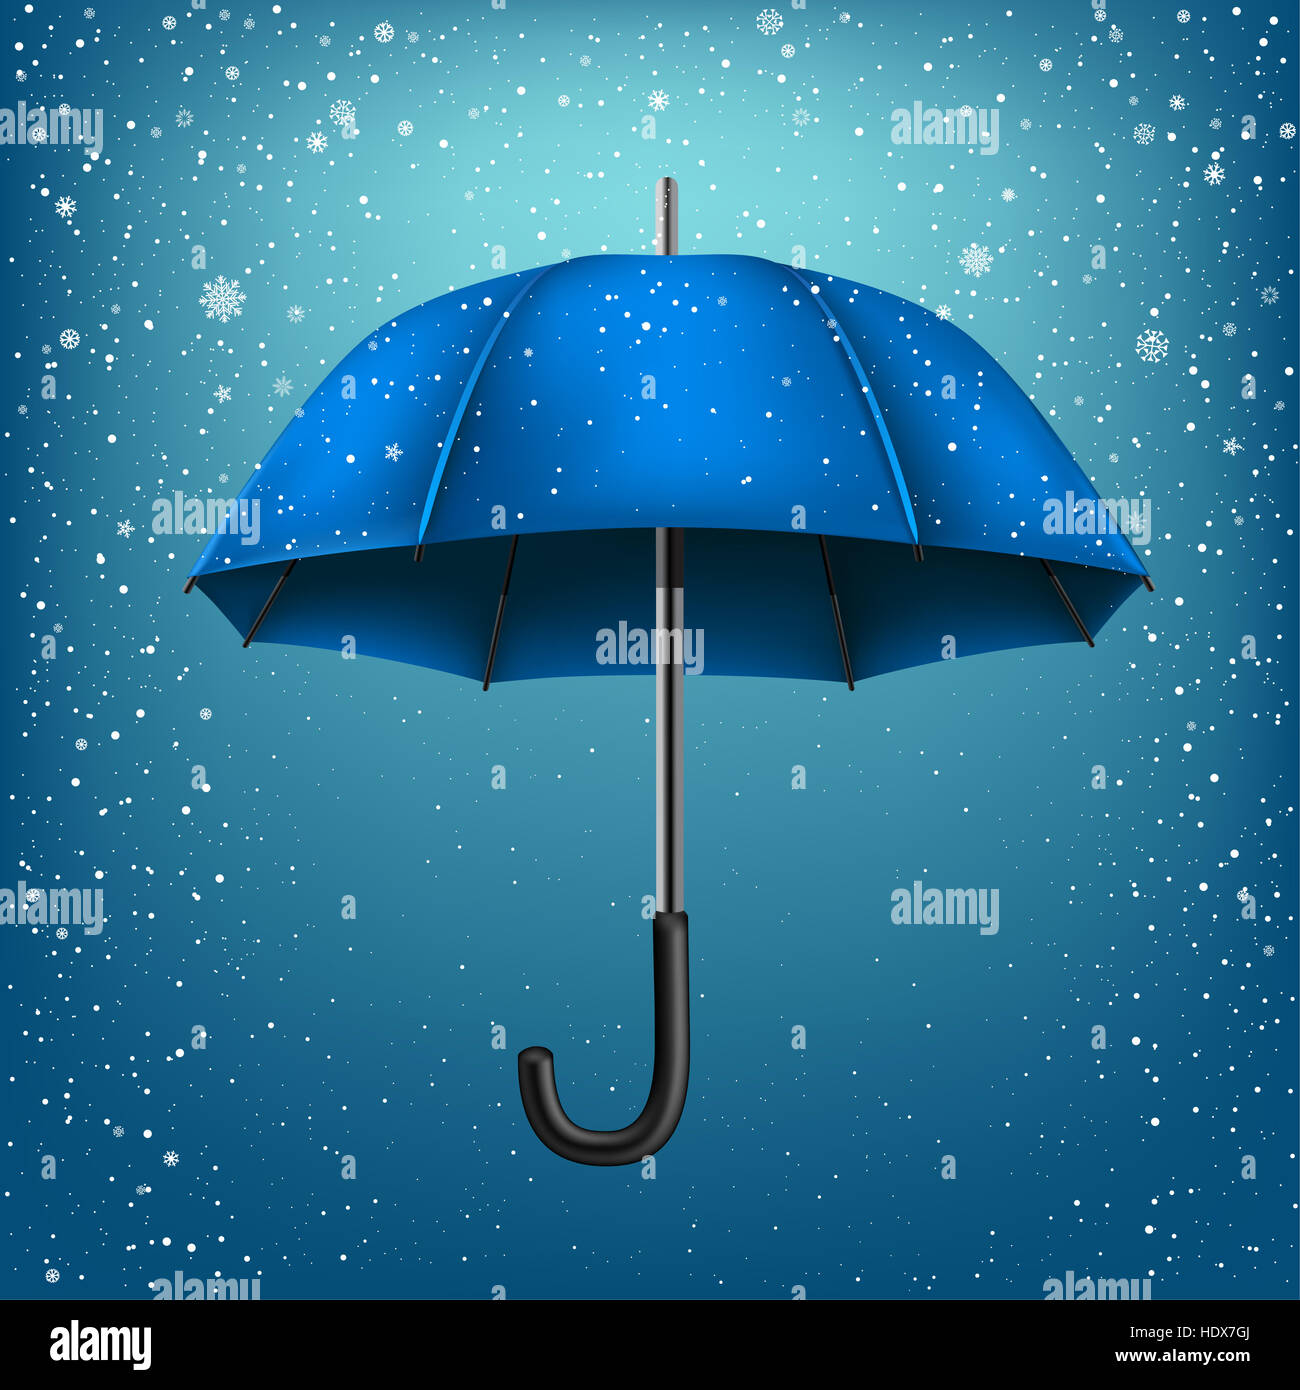 blue umbrella on blue snow background christmas and new year theme